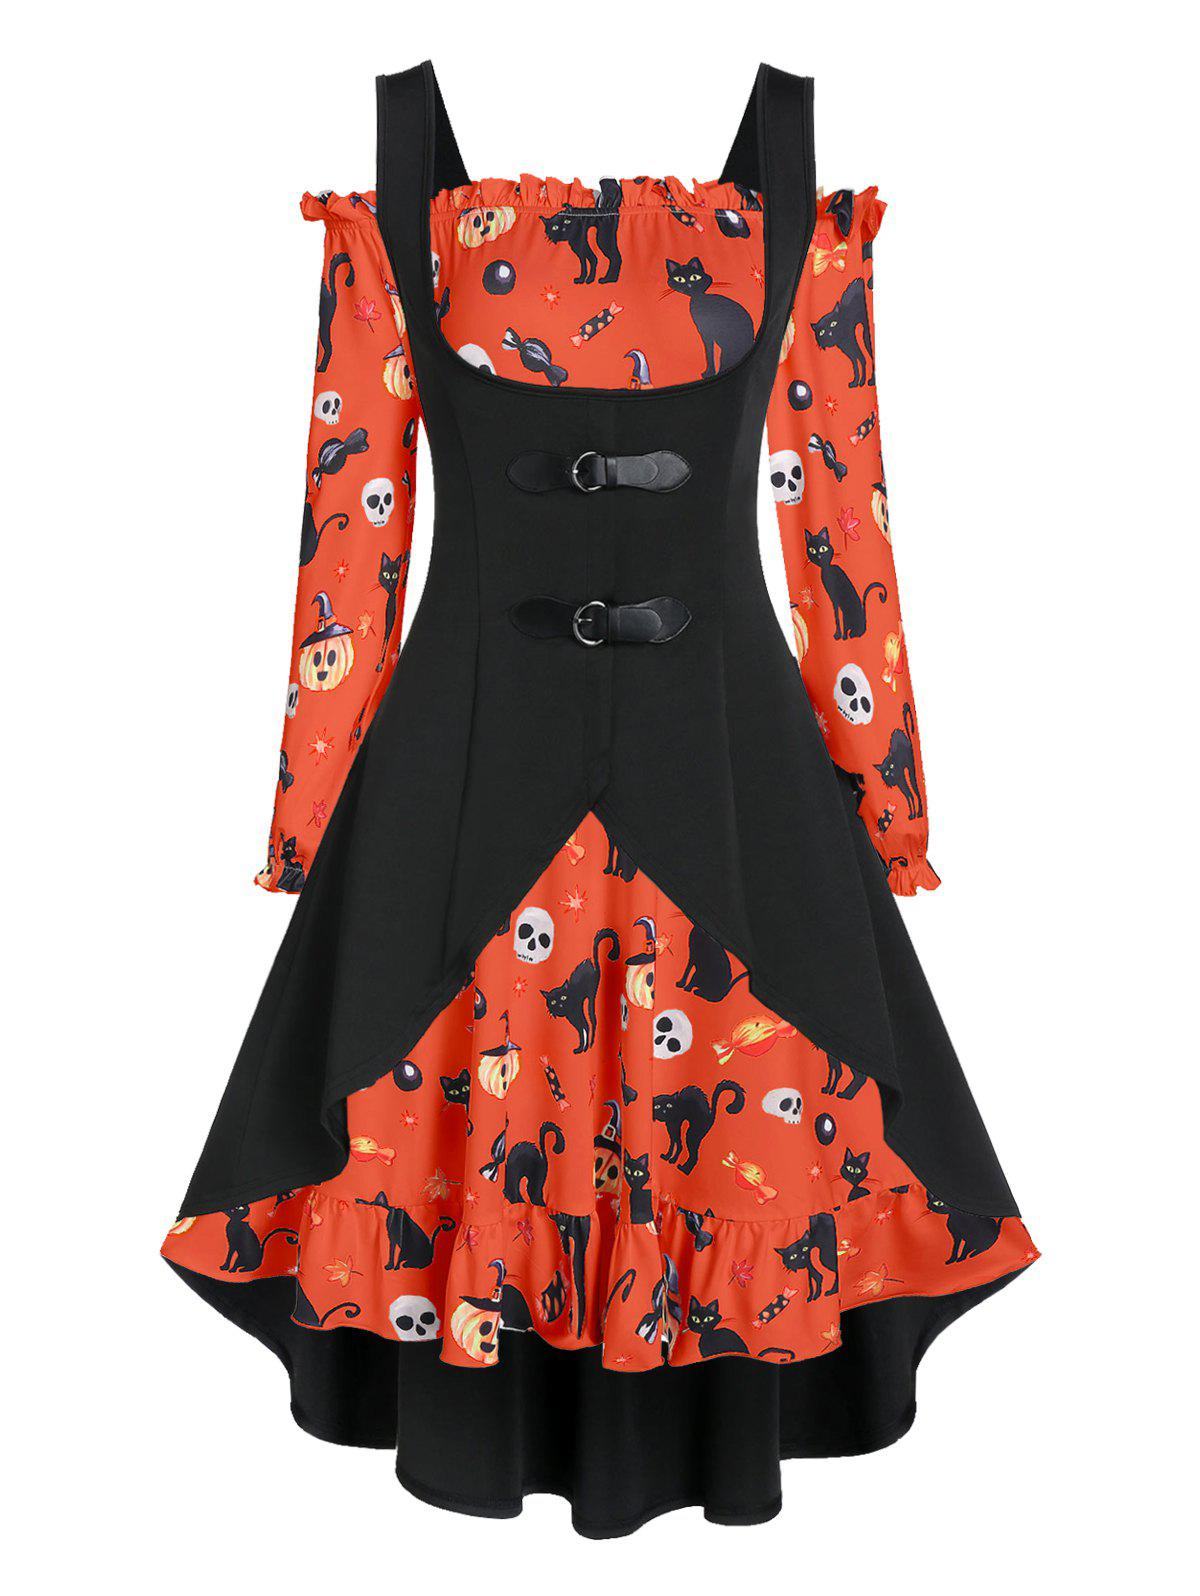 New Off The Shoulder Cat Skull Print Halloween Dress with Top